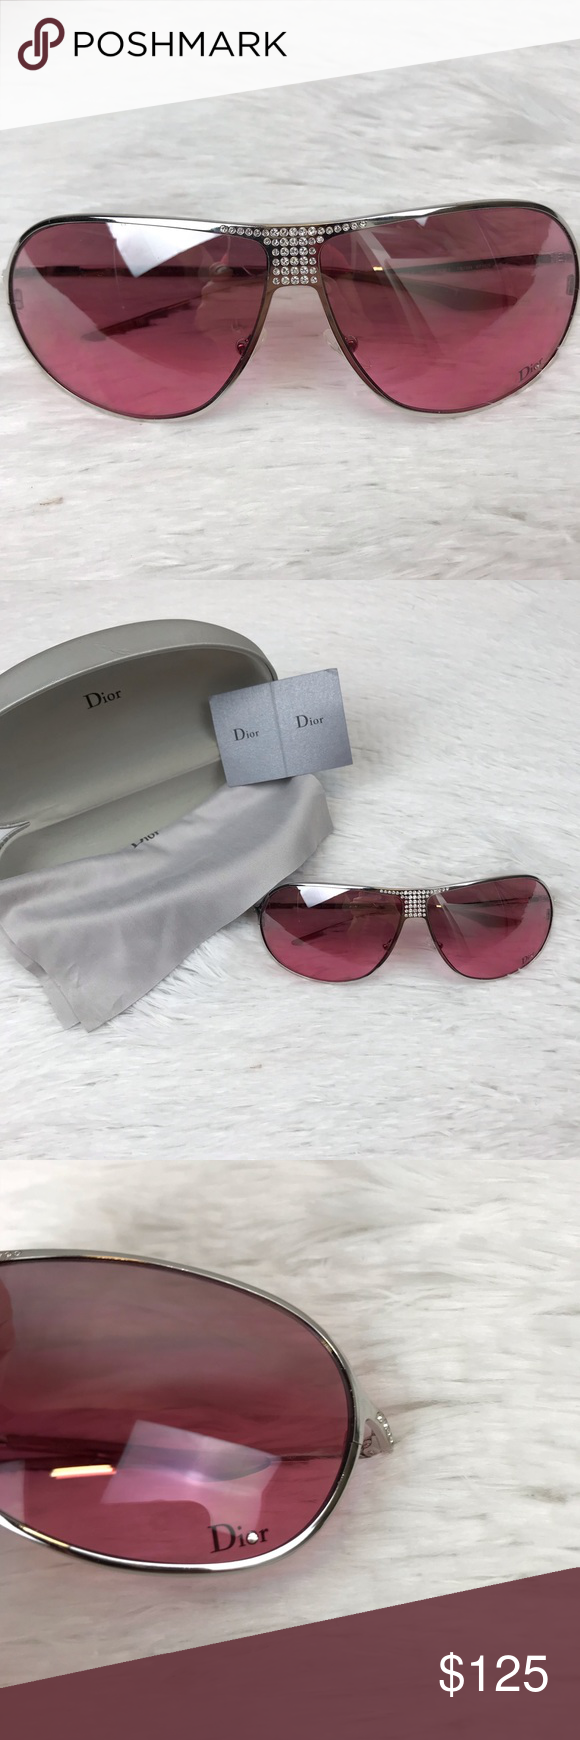 74112ddf3b9c Spotted while shopping on Poshmark  Christian Dior Hard 1 Aviator Crystal  Sunglasses!  poshmark  fashion  shopping  style  Dior  Accessories